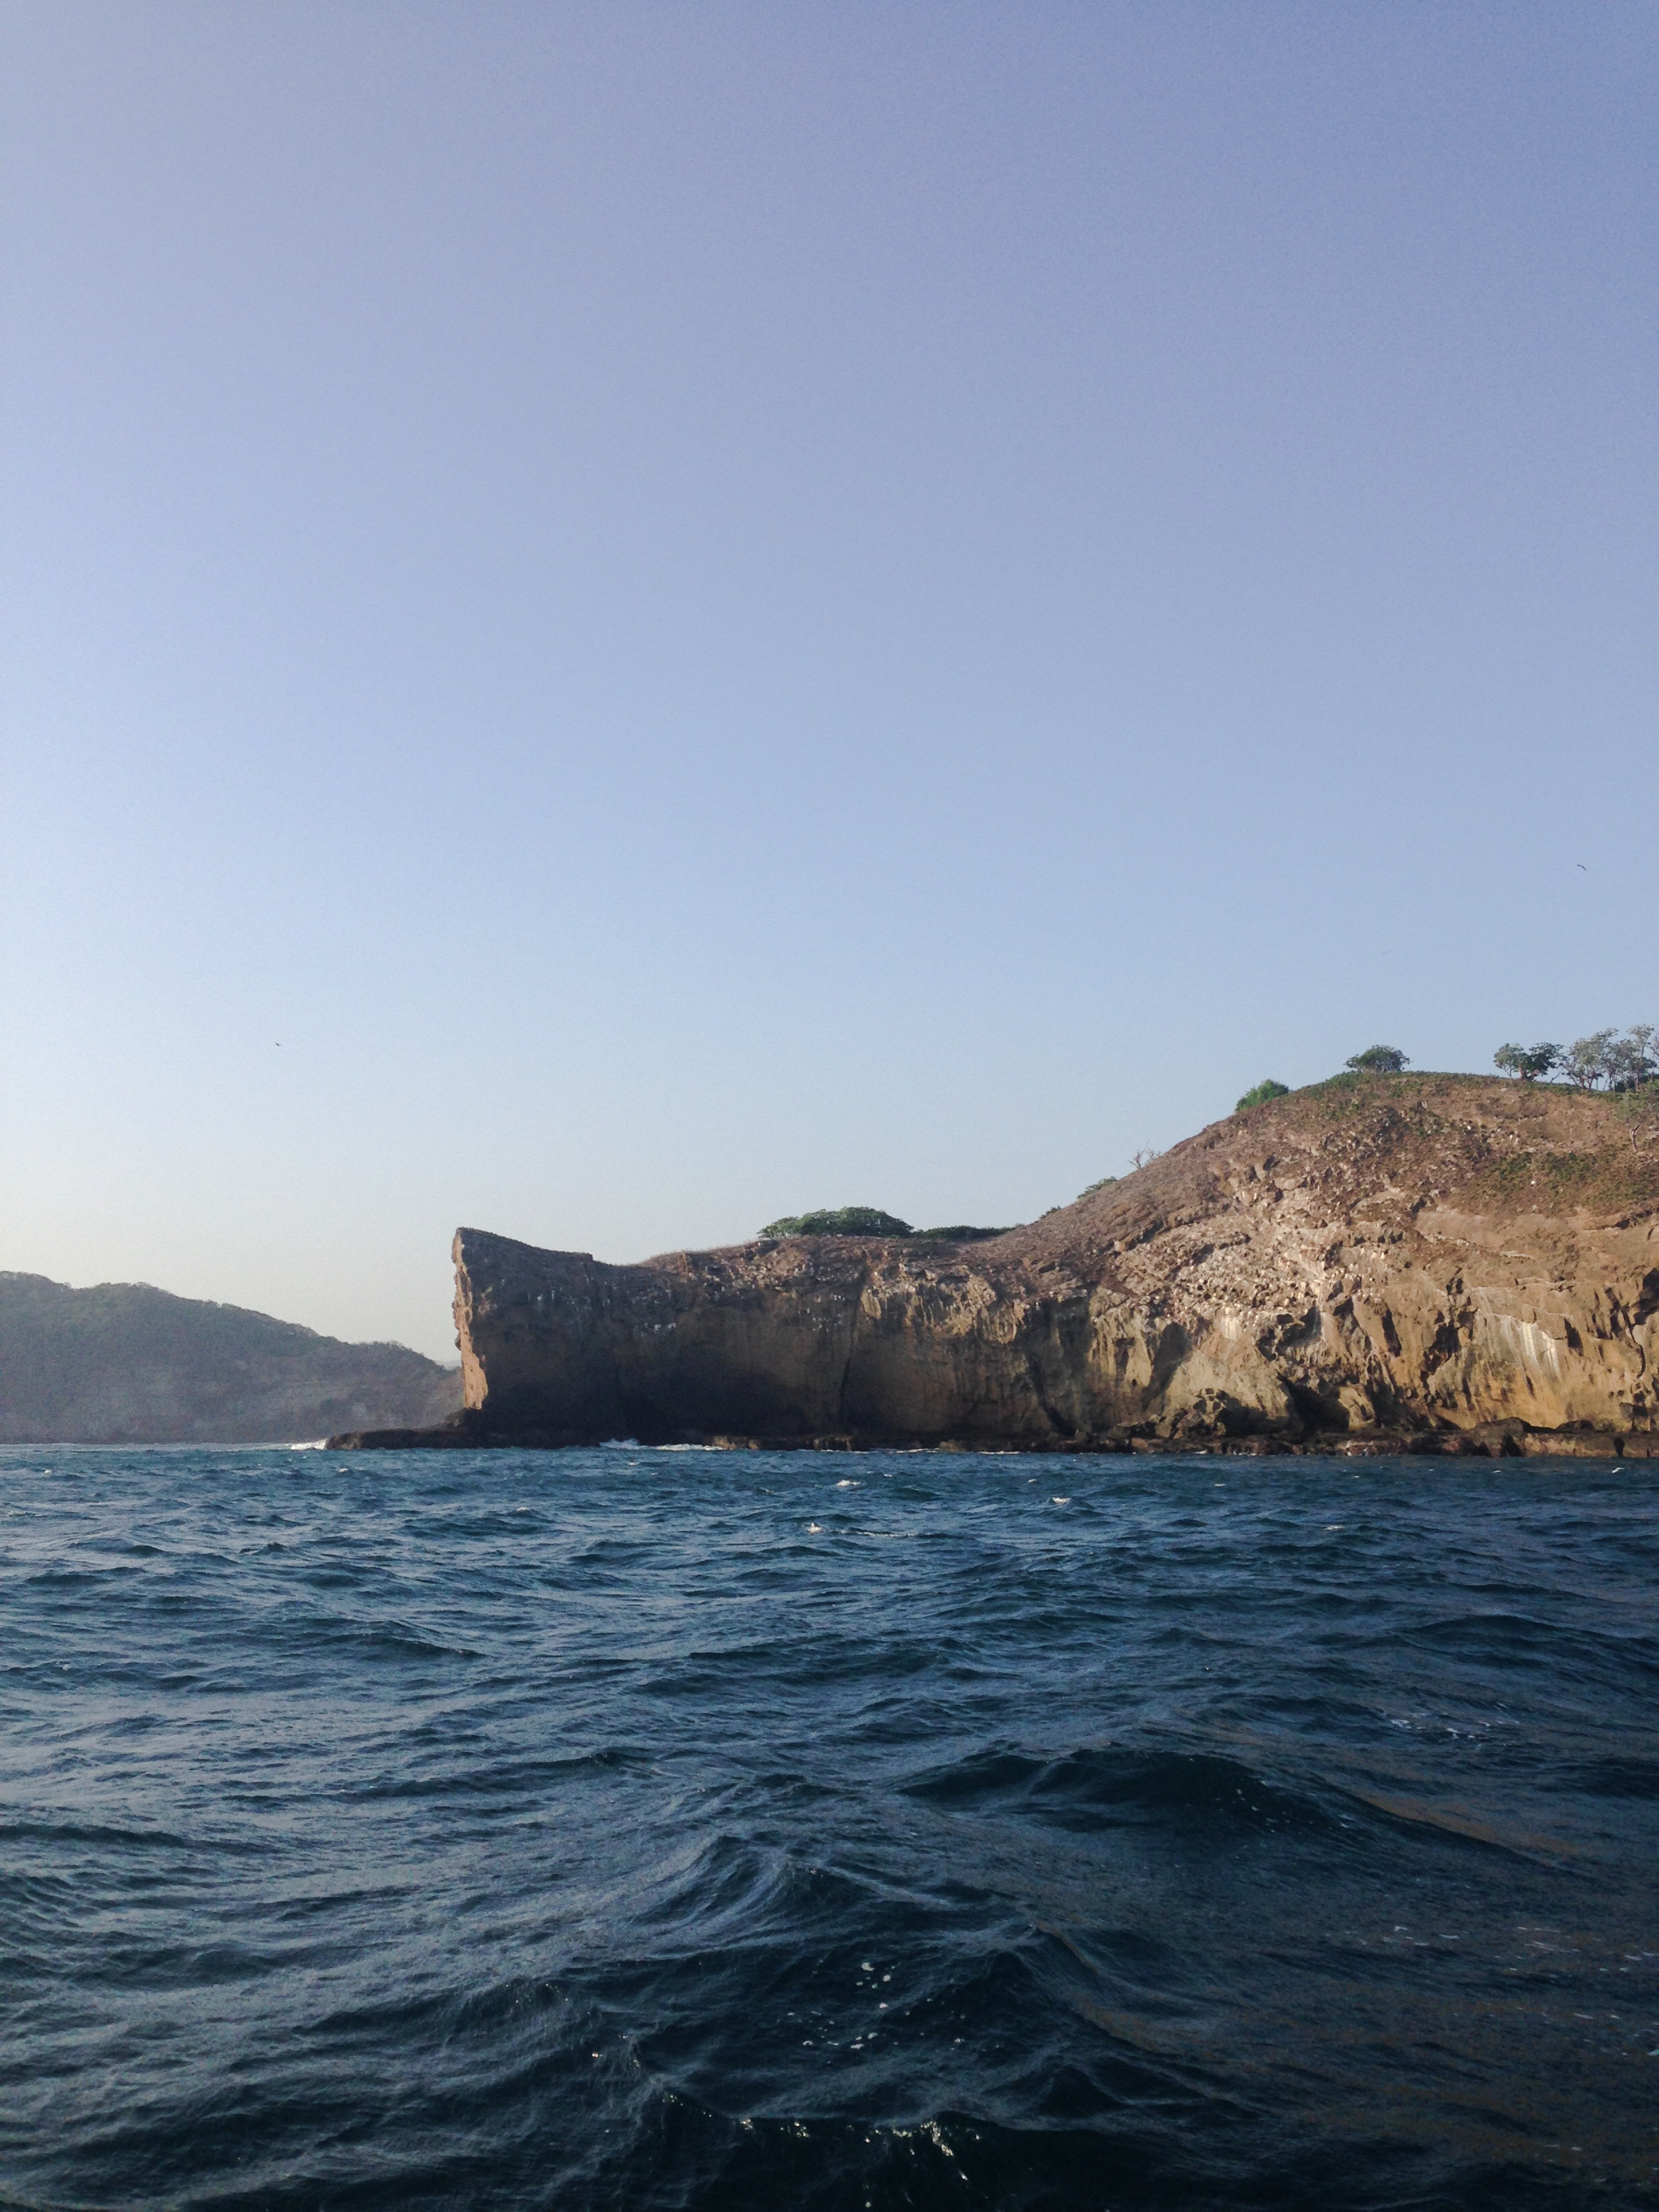 There were cliffs and little islands everywhere